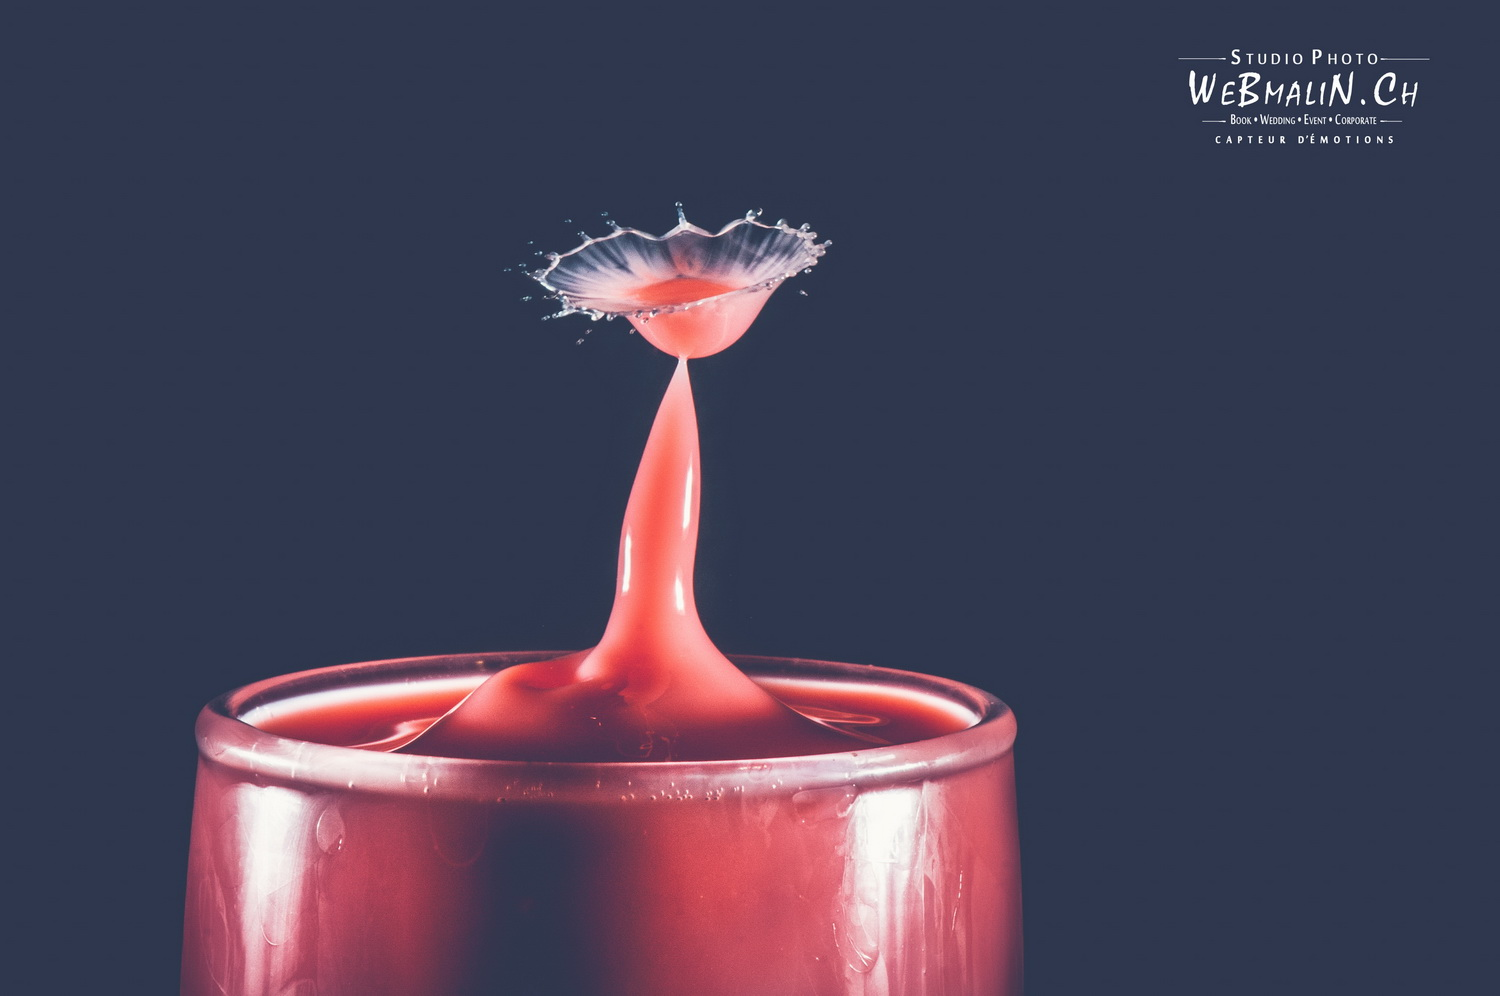 Portfolio - Liquid Art - Water Drops Photography